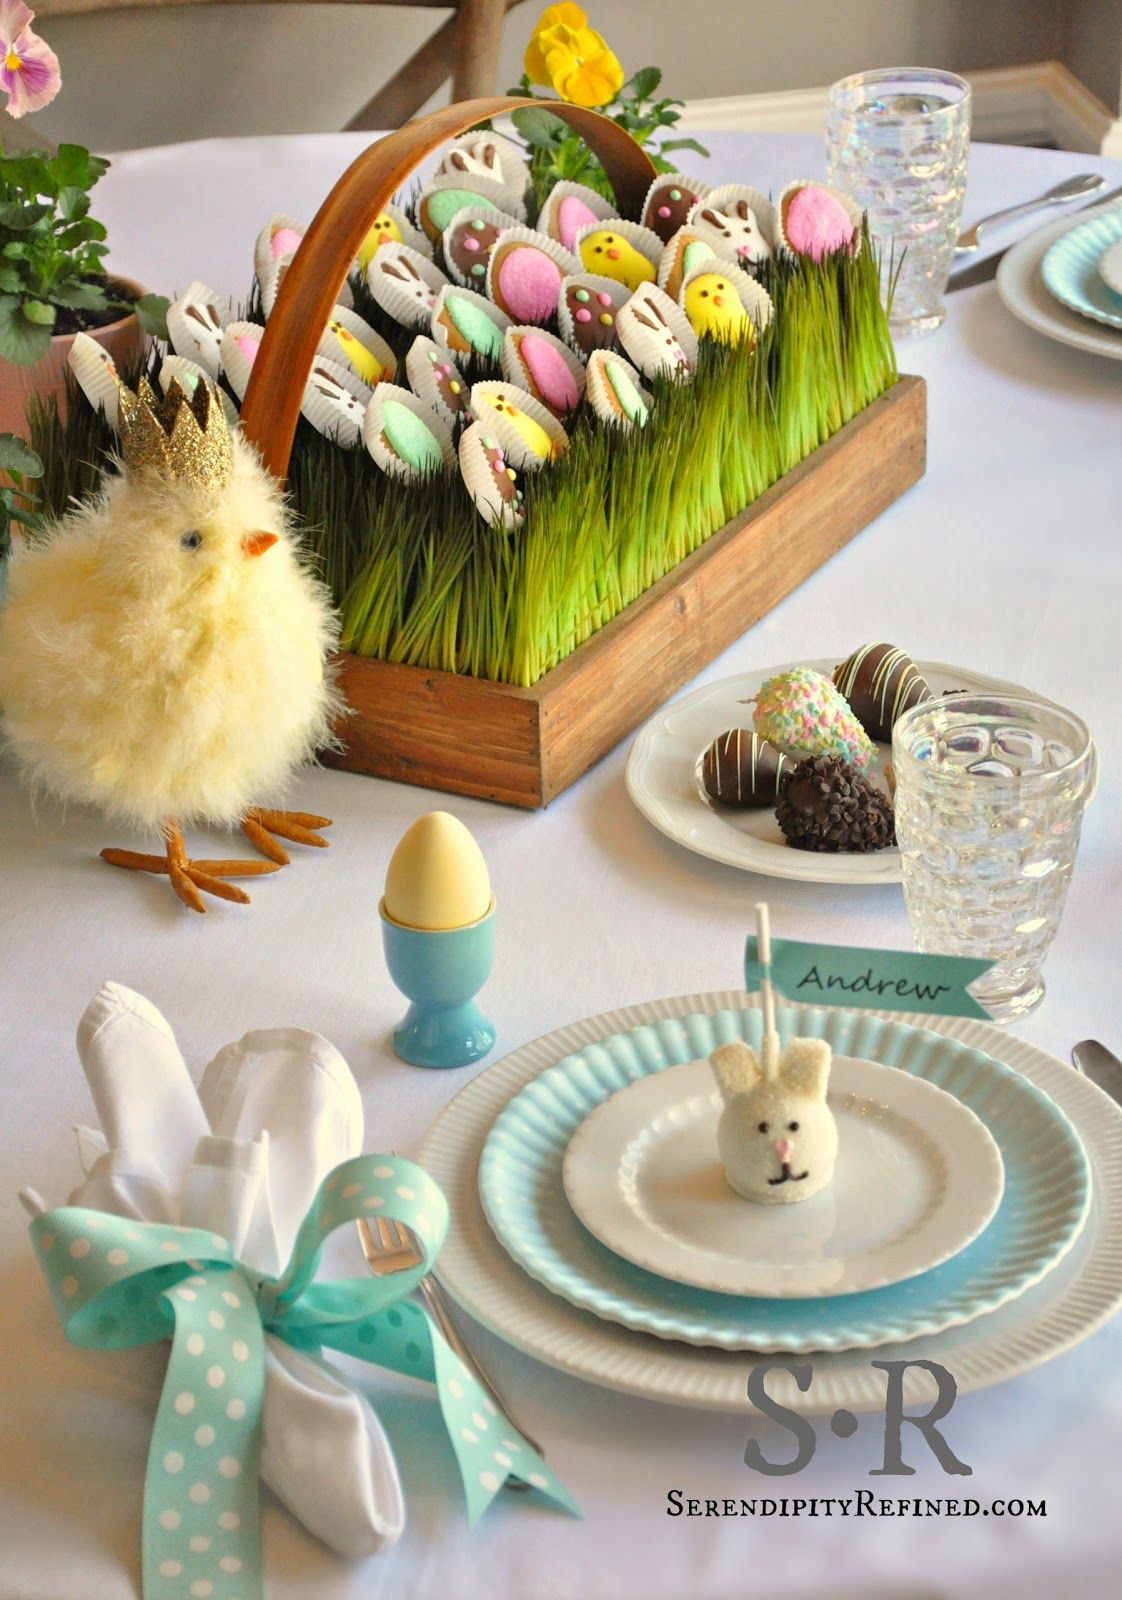 Easter Table Decorations Part - 40: Serendipity Refined Blog: Pastel Spring EDIBLE Easter Table Decorating